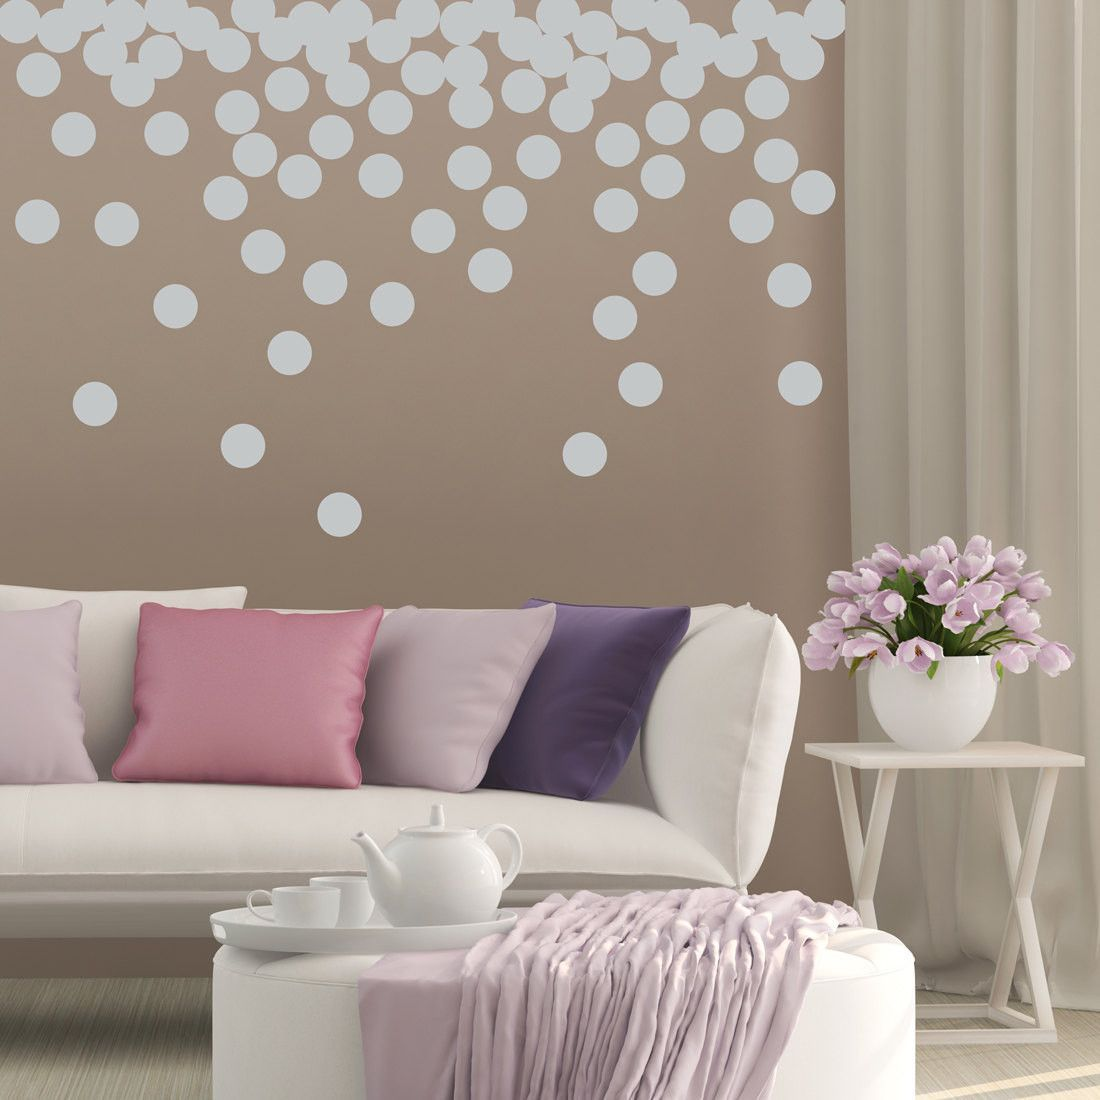 Dot Wall Decal Set   Set Of 56 Polka Dots   Living Room Wall Stickers